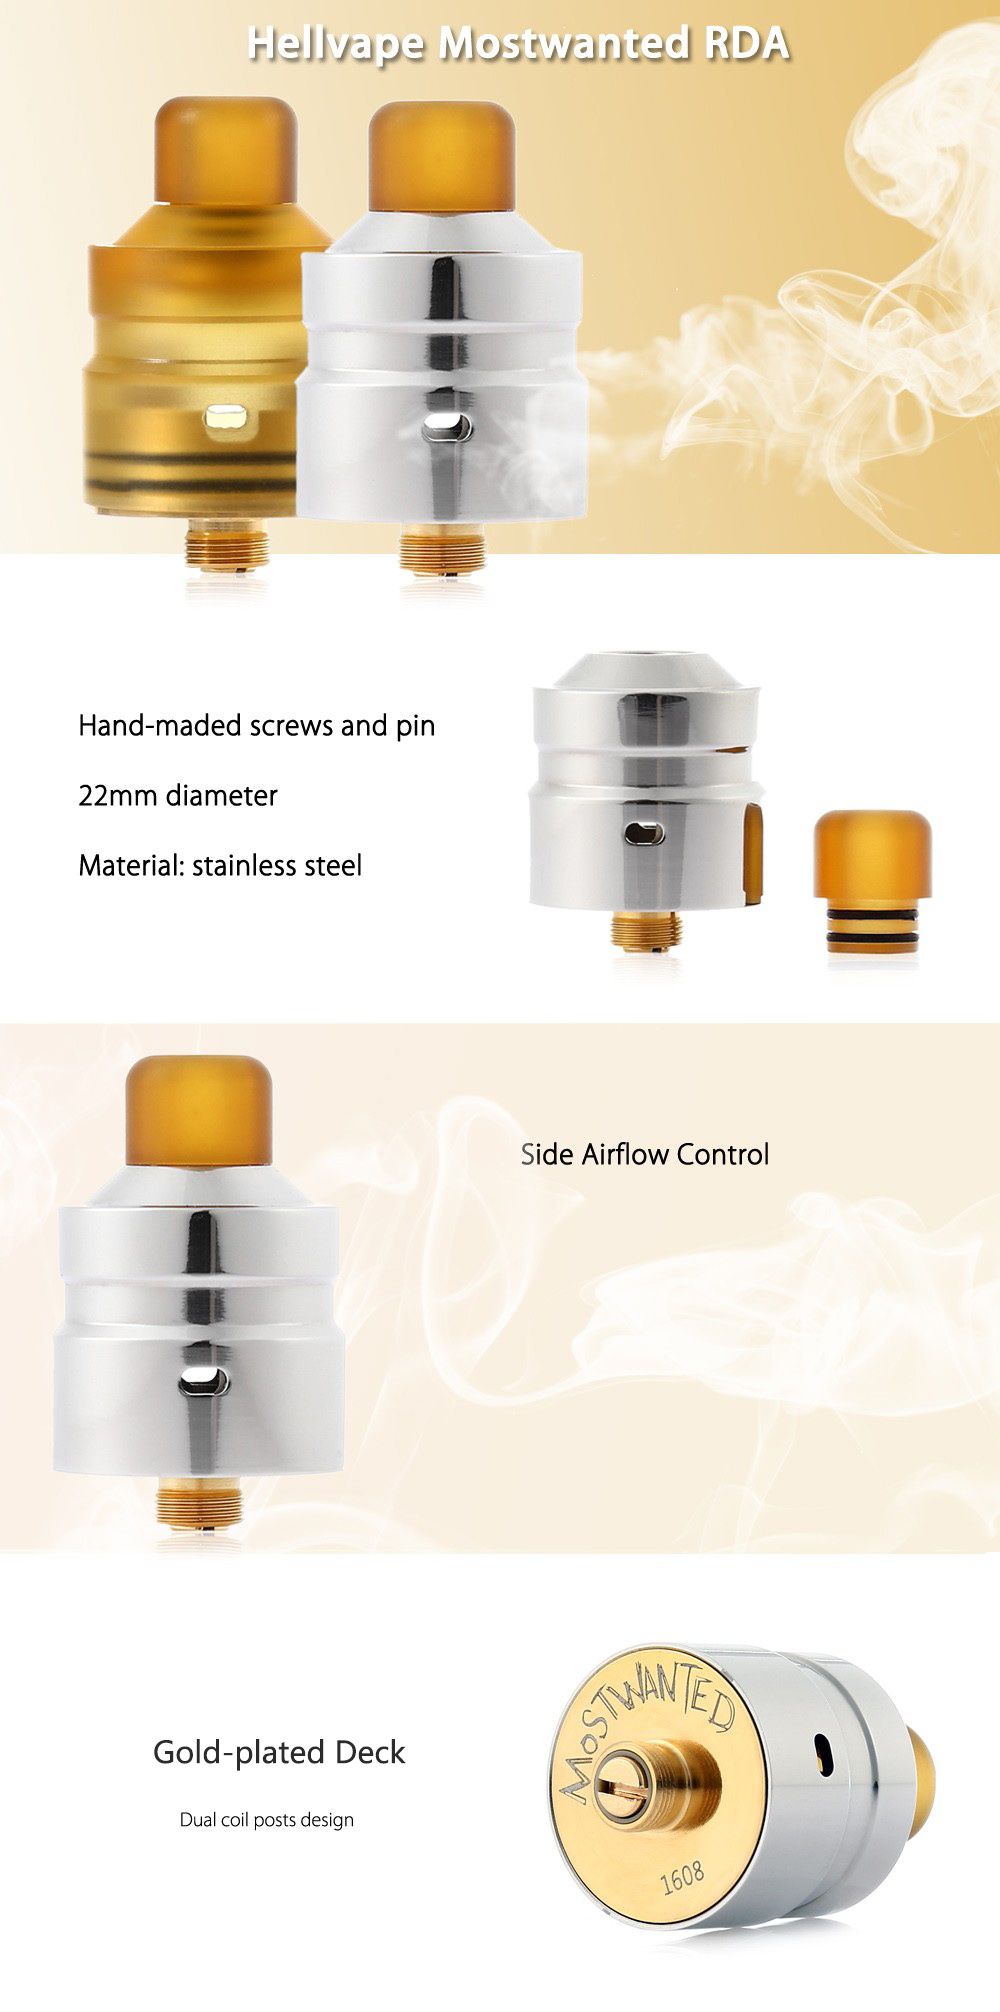 Original Hellvape Mostwanted RDA with Gold-plated Deck / Dual Coil Posts Design / 22mm Diameter for E Cigarette